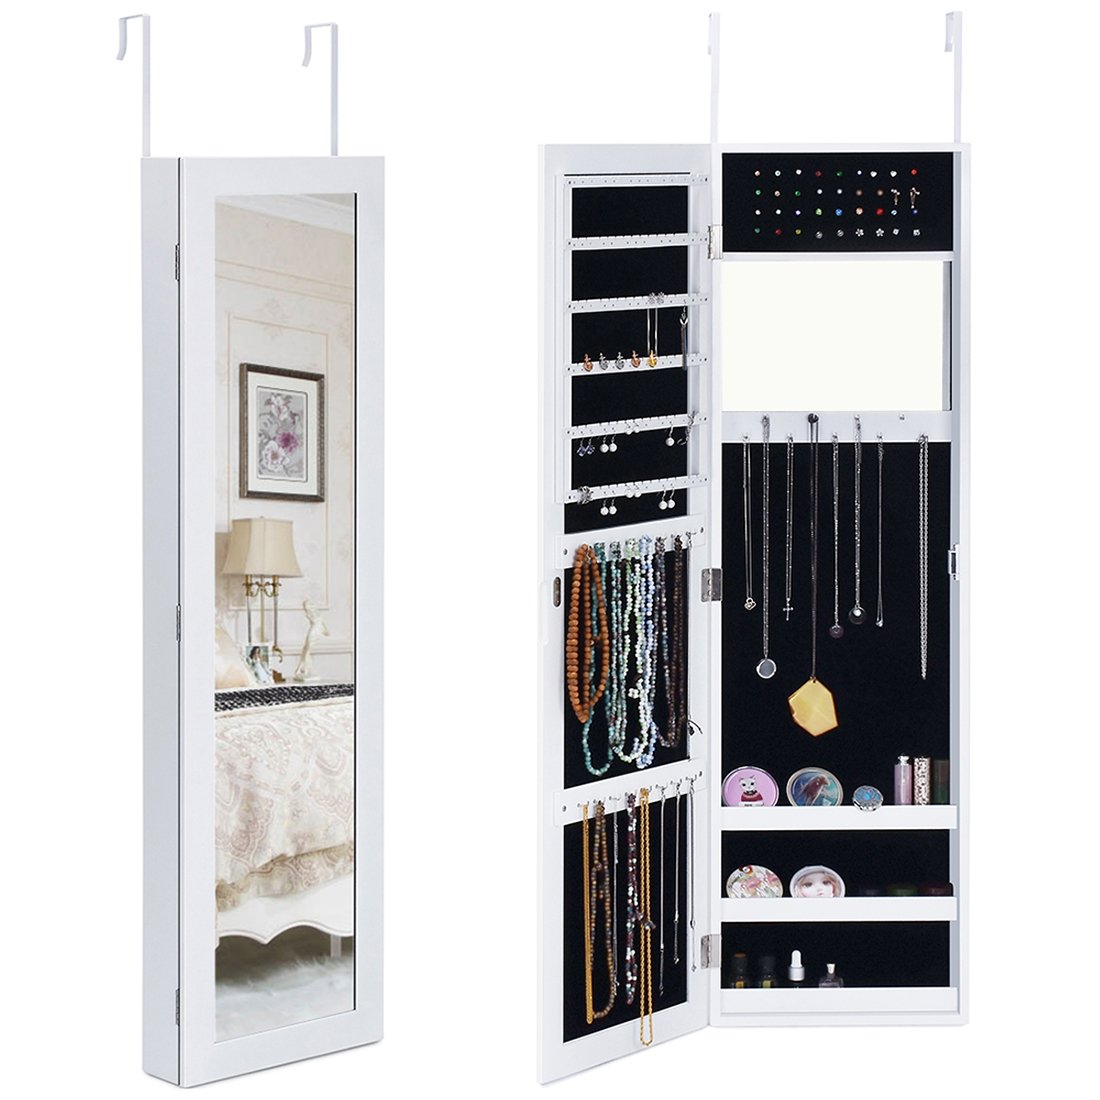 Kingbird Space Saving Mirror Jewelry Cabinet Armoire Wall Door Mounted Lockable Jewelry Holder Organizer for Rings, Necklaces, Earrings, Bracelets and Makeup (White)